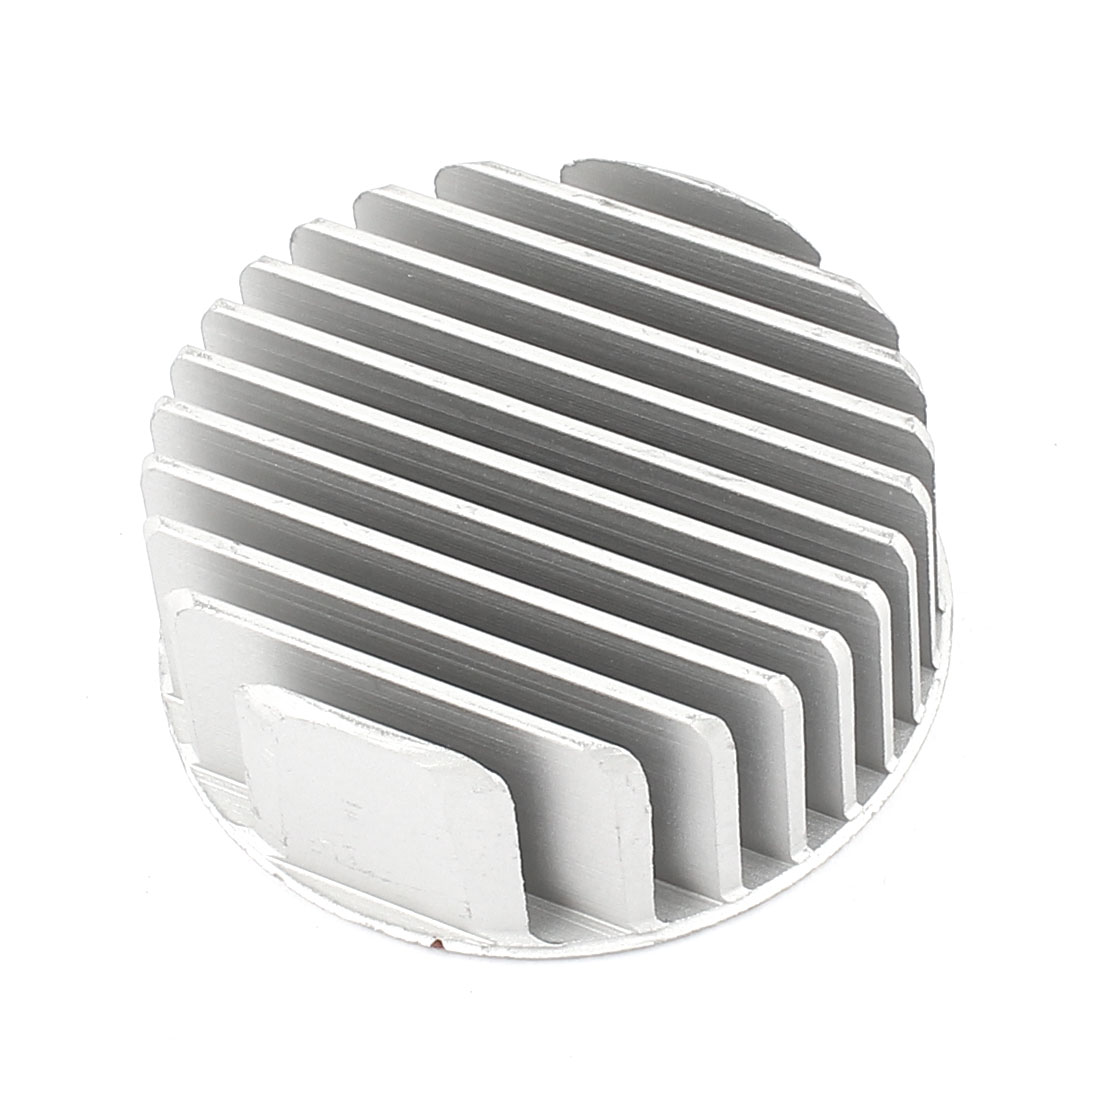 70mm x 29mm 3.8mm Pitch 10W High Power LED Heatsink Aluminium Cooling Fin